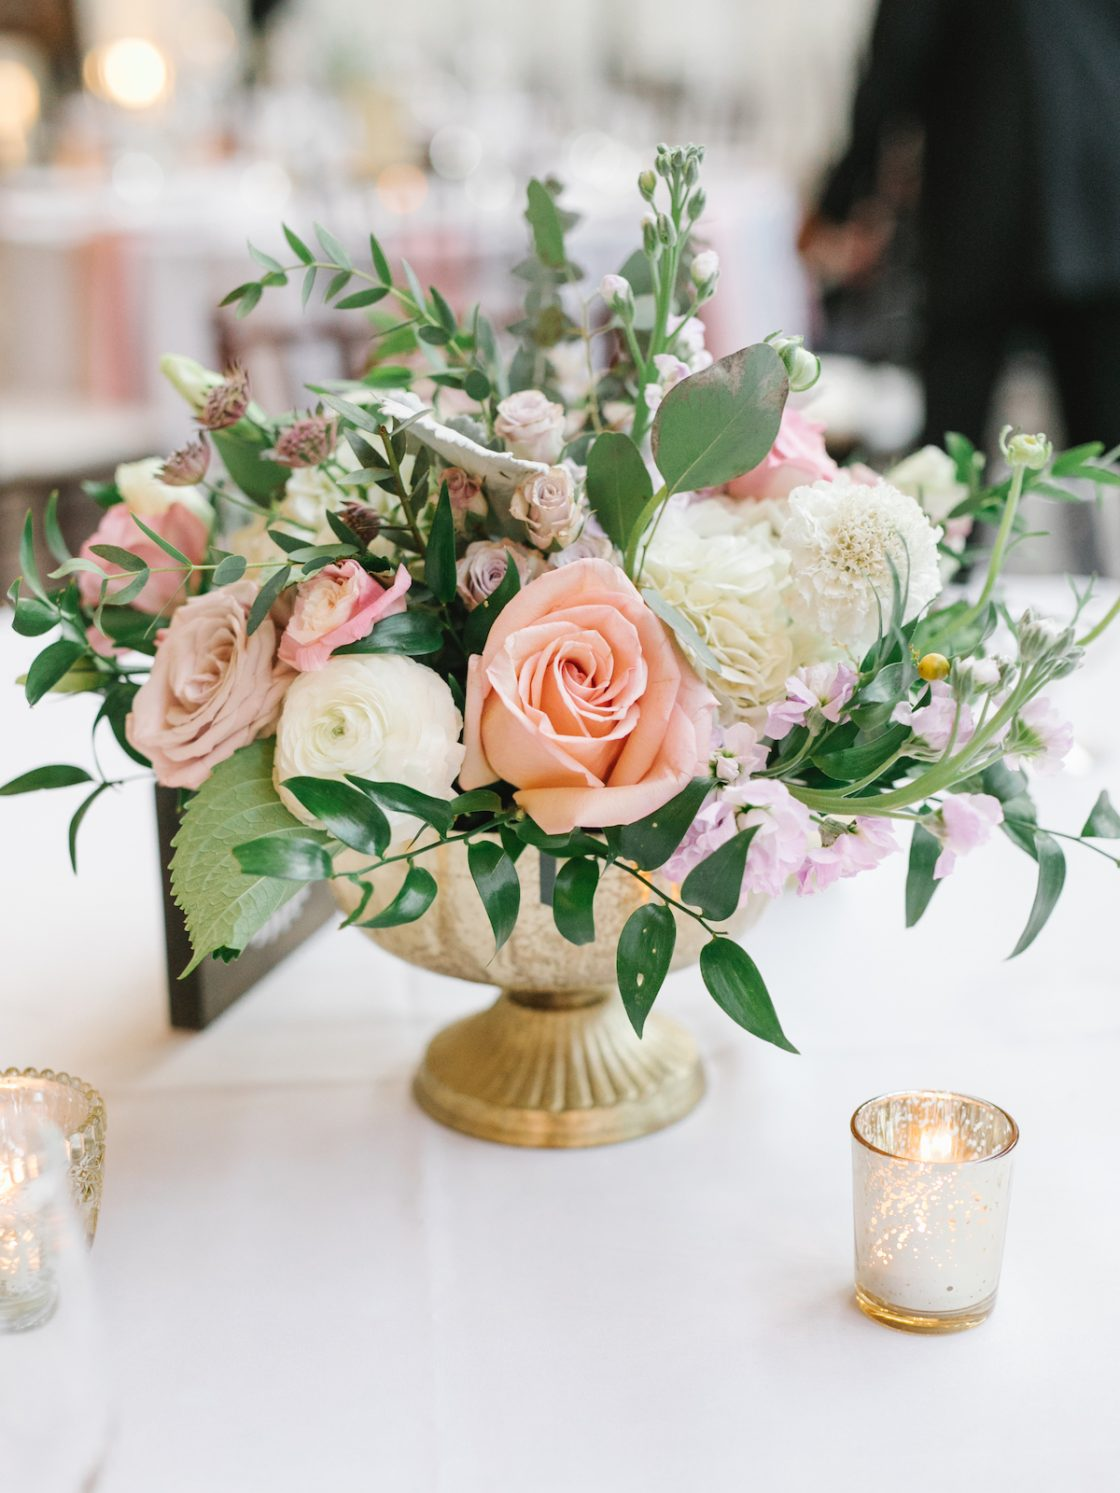 Rose Raunculus Lisianthus Scabiosa Wedding Centerpiece